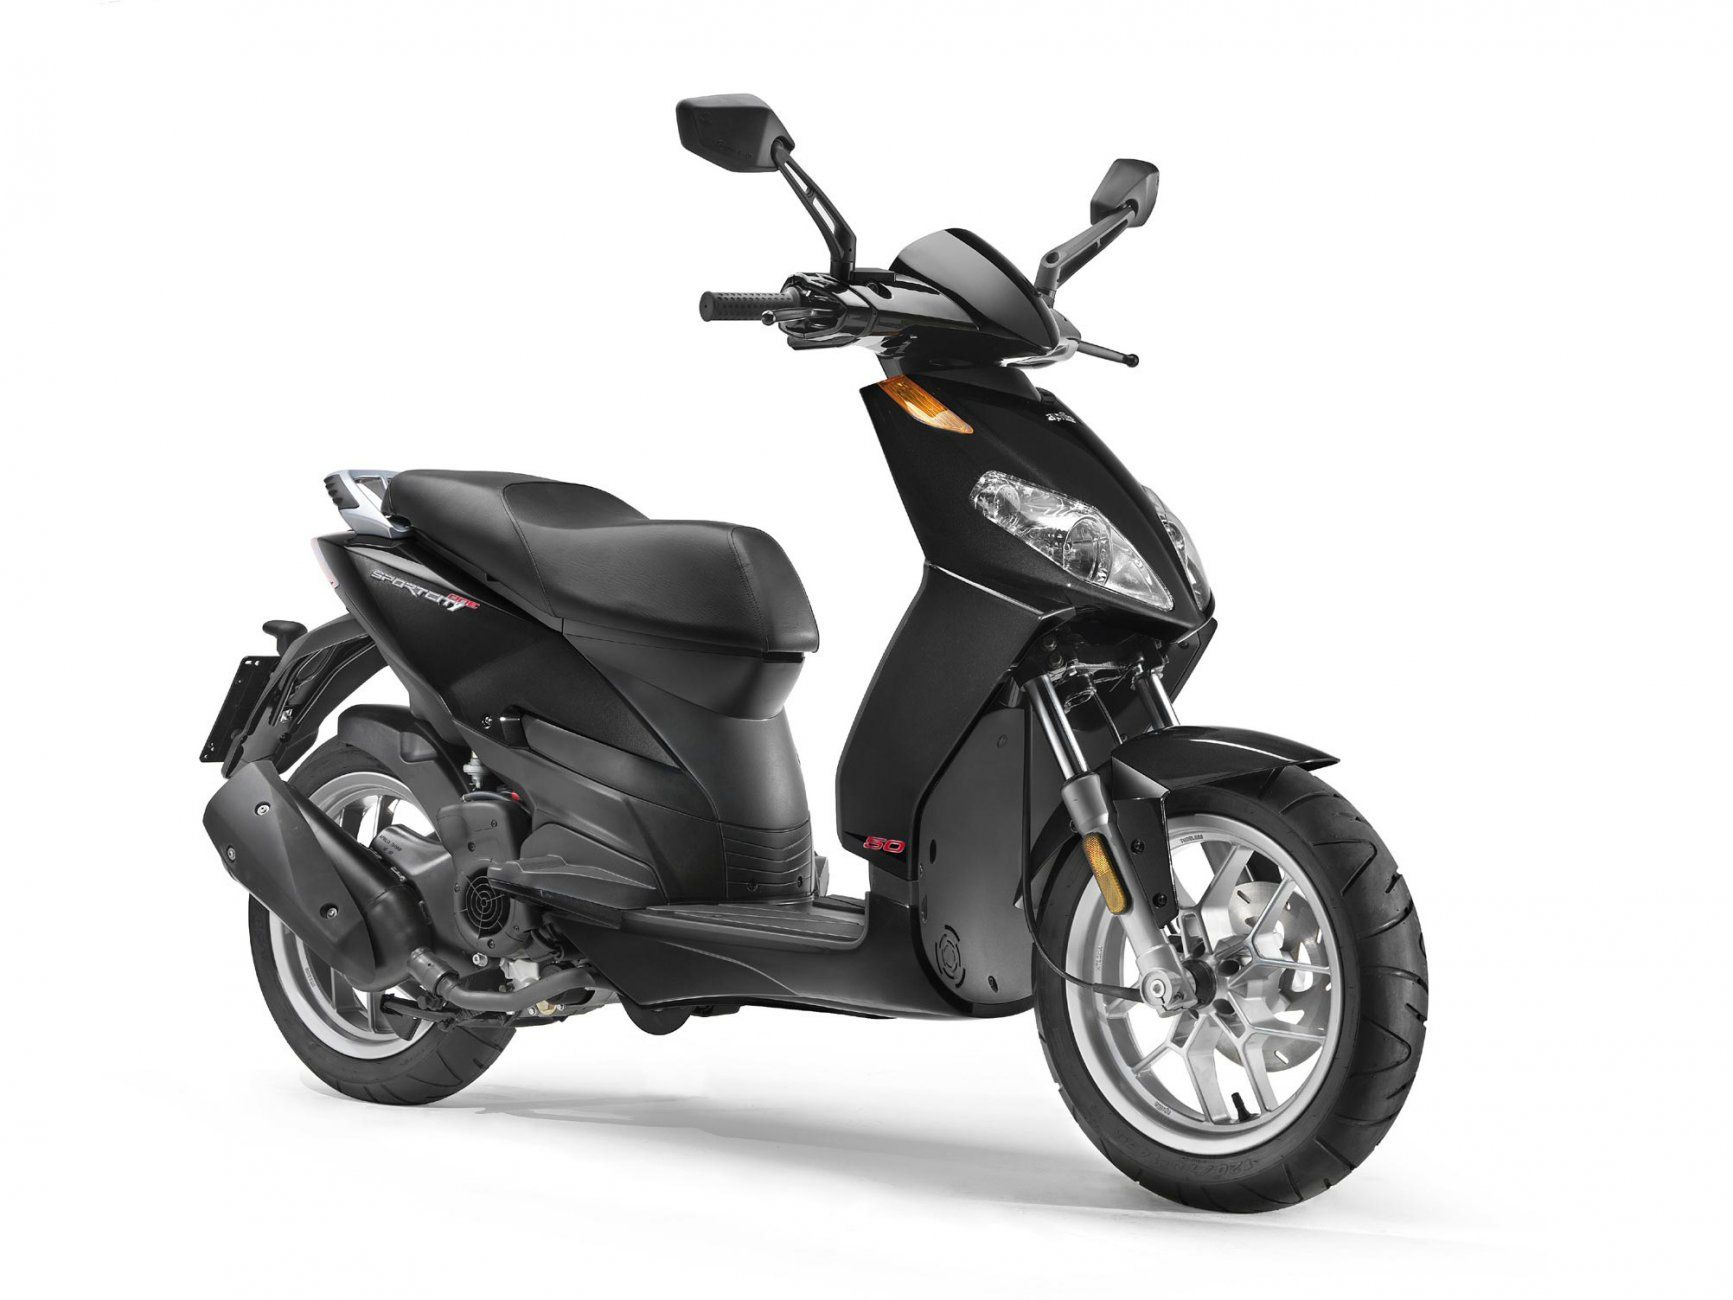 scooter gt aprilia sport city 125 300 cm3 moto scooter marseille occasion moto. Black Bedroom Furniture Sets. Home Design Ideas